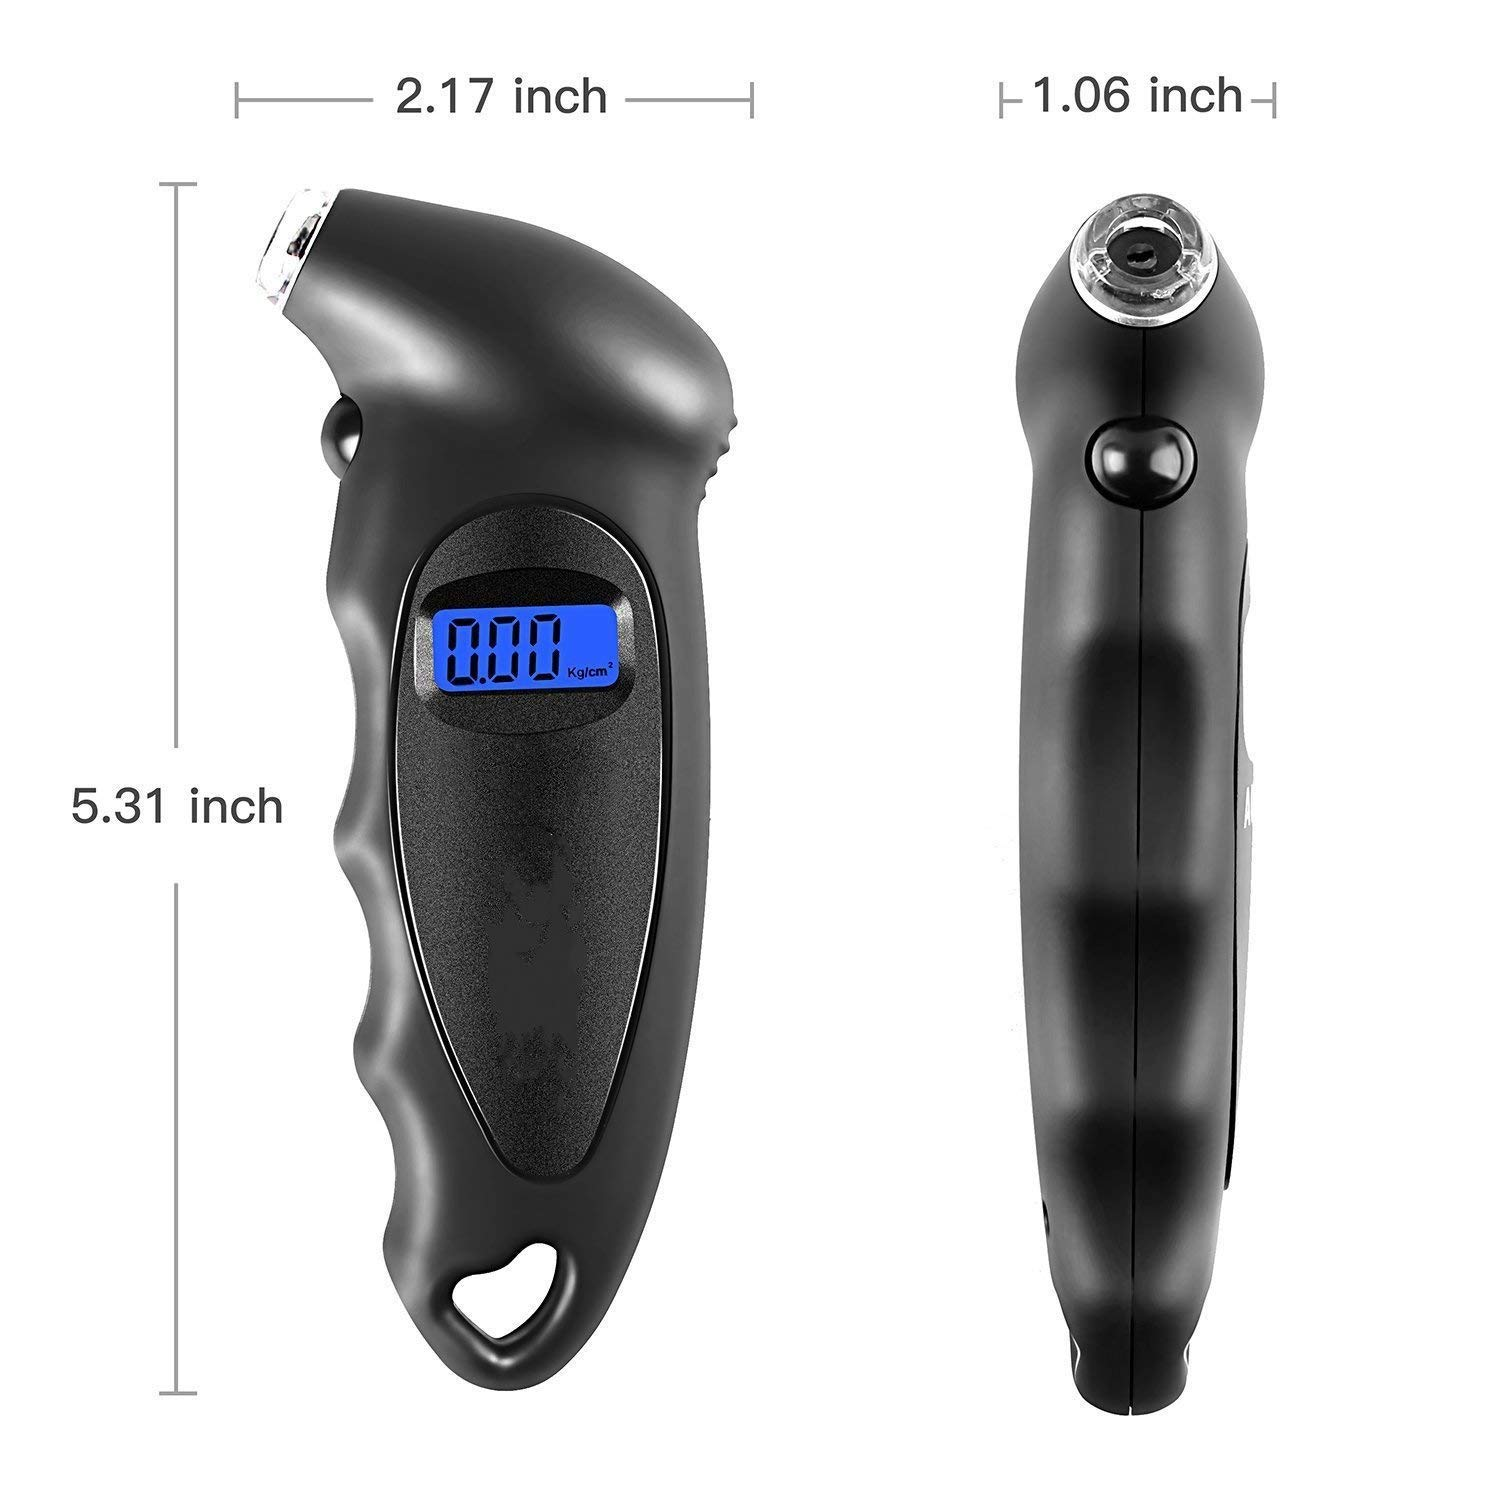 JIDIMI Tyre Pressure Gauge Digital Tyre Gauge With Backlight LCD Display 150 PSI ABS for Cars Bikes Motorcycles etc Black